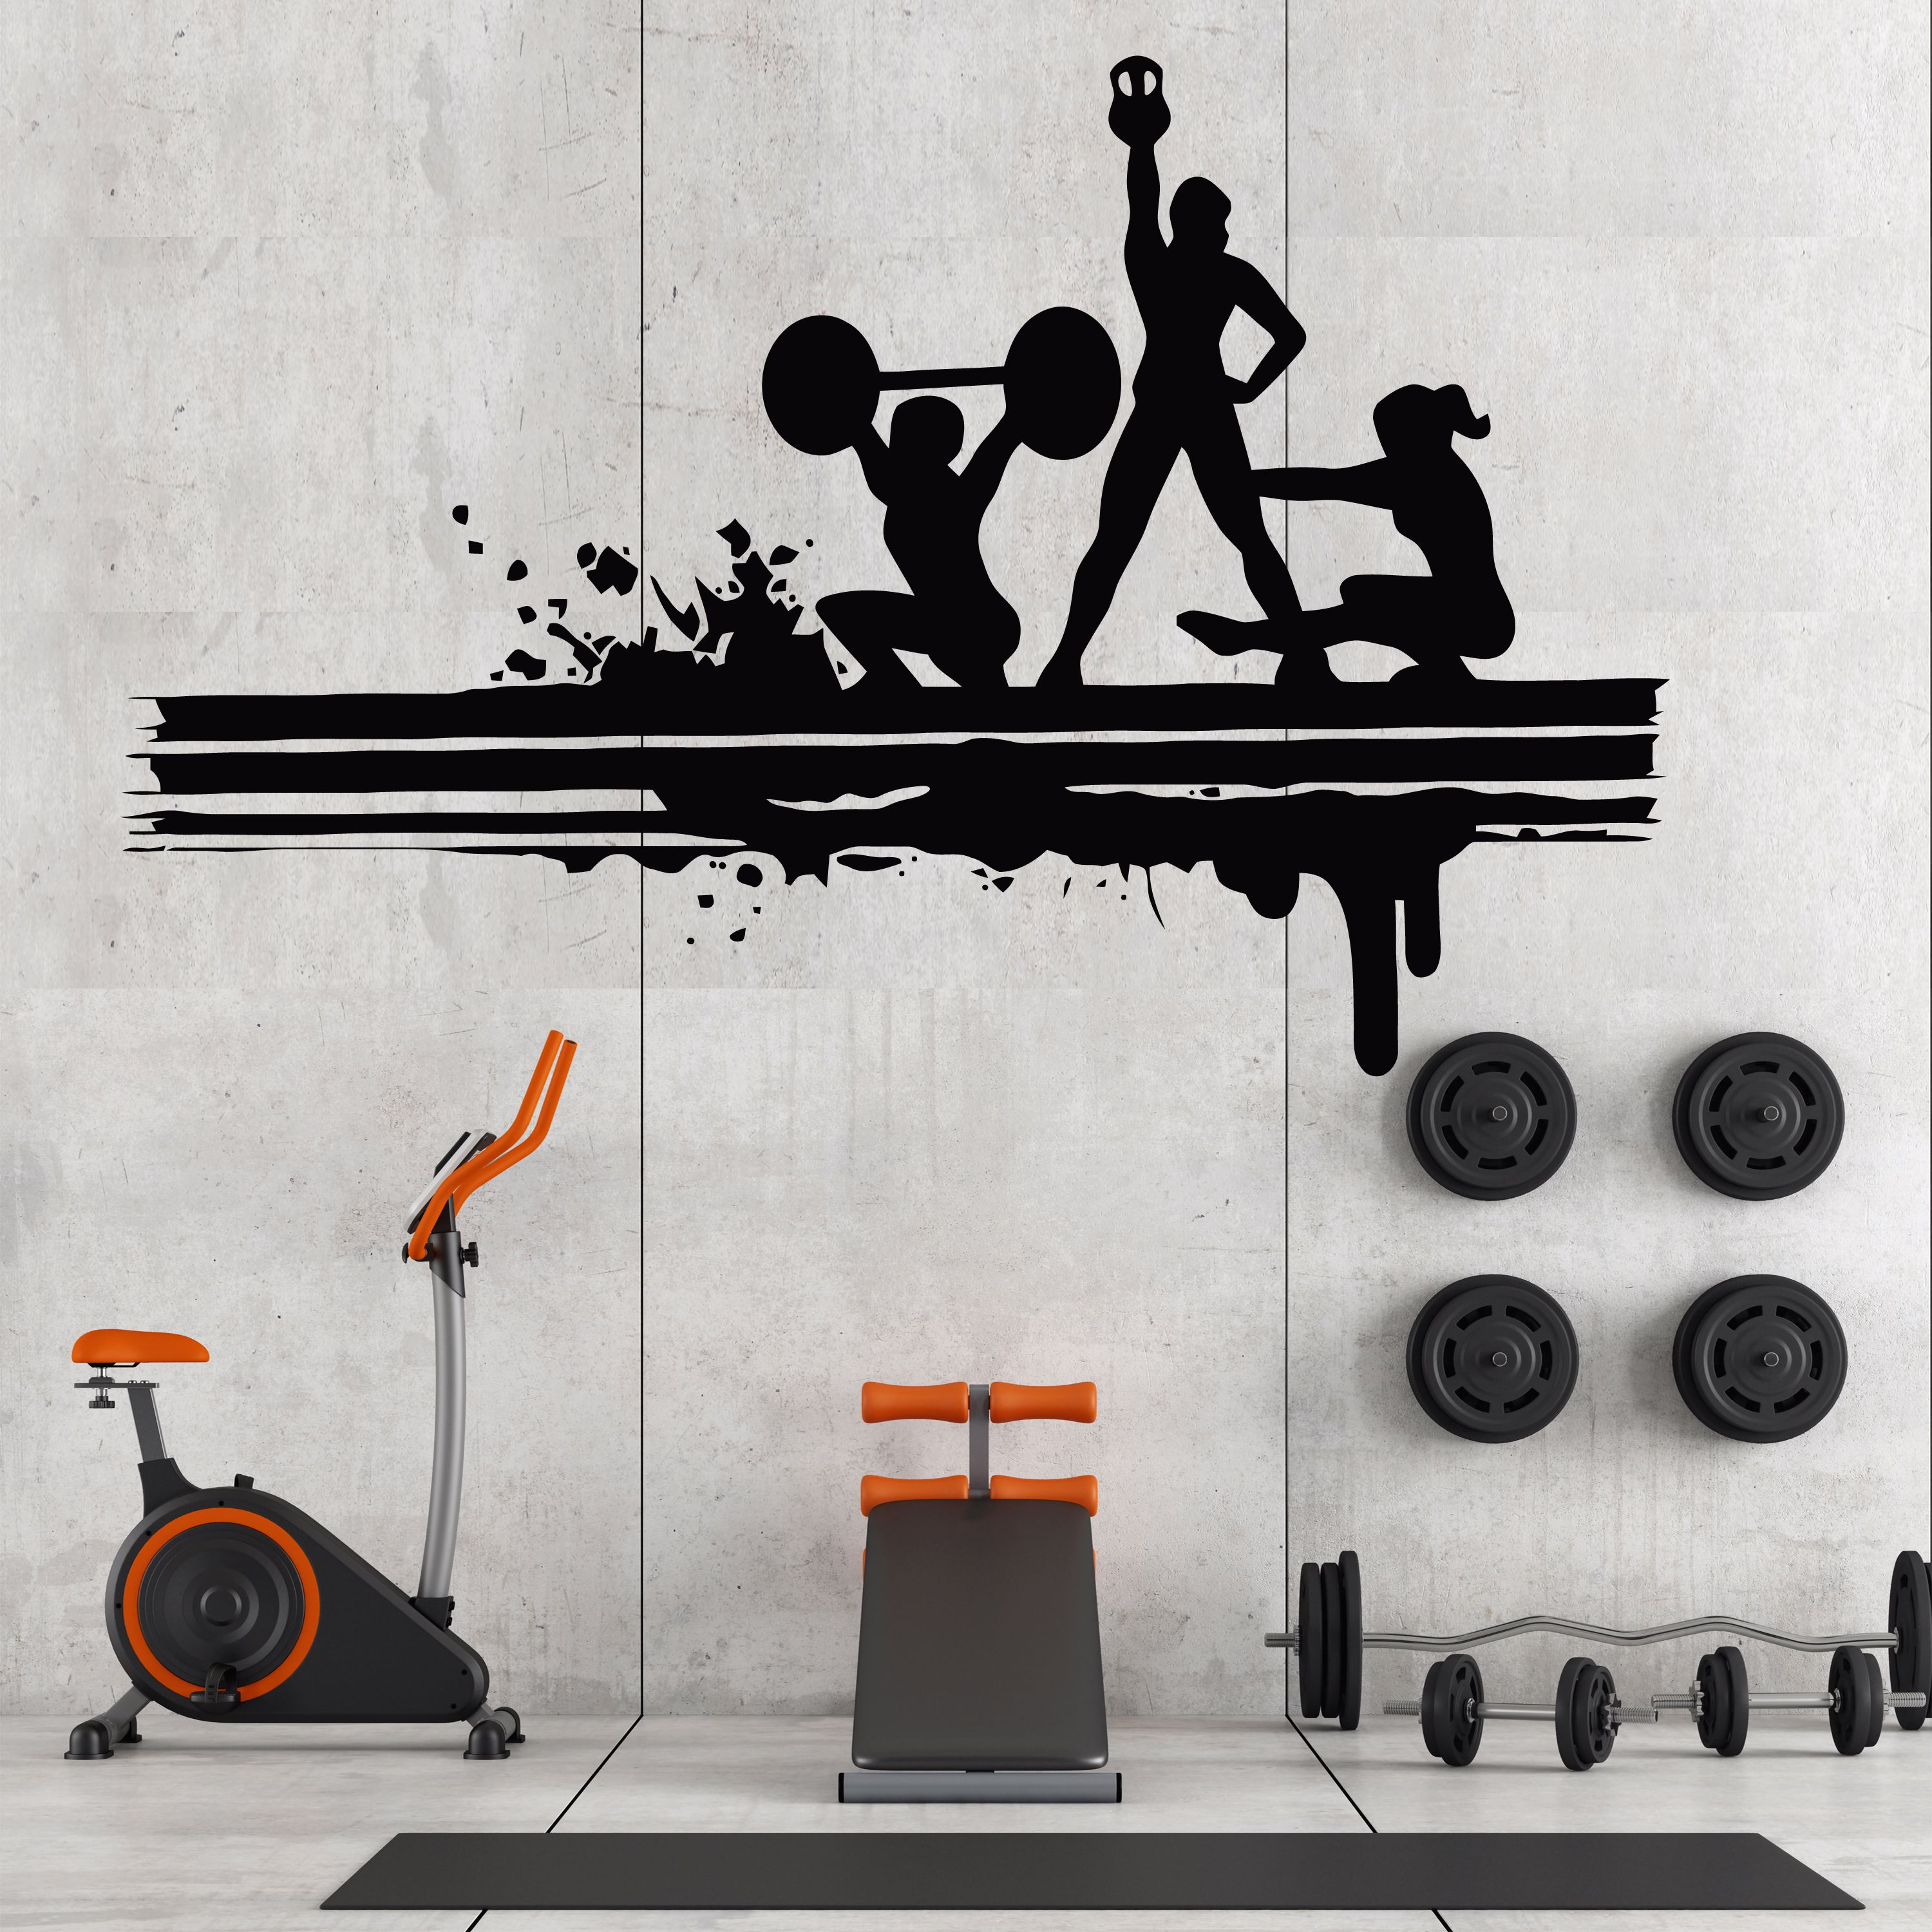 Gym Wall Decals Gym Wall Quotes Workout Wall Motivational Quotes Fitness Wall Decor Gym Wall Decor Gym Wall Decal Gym Wall Quotes